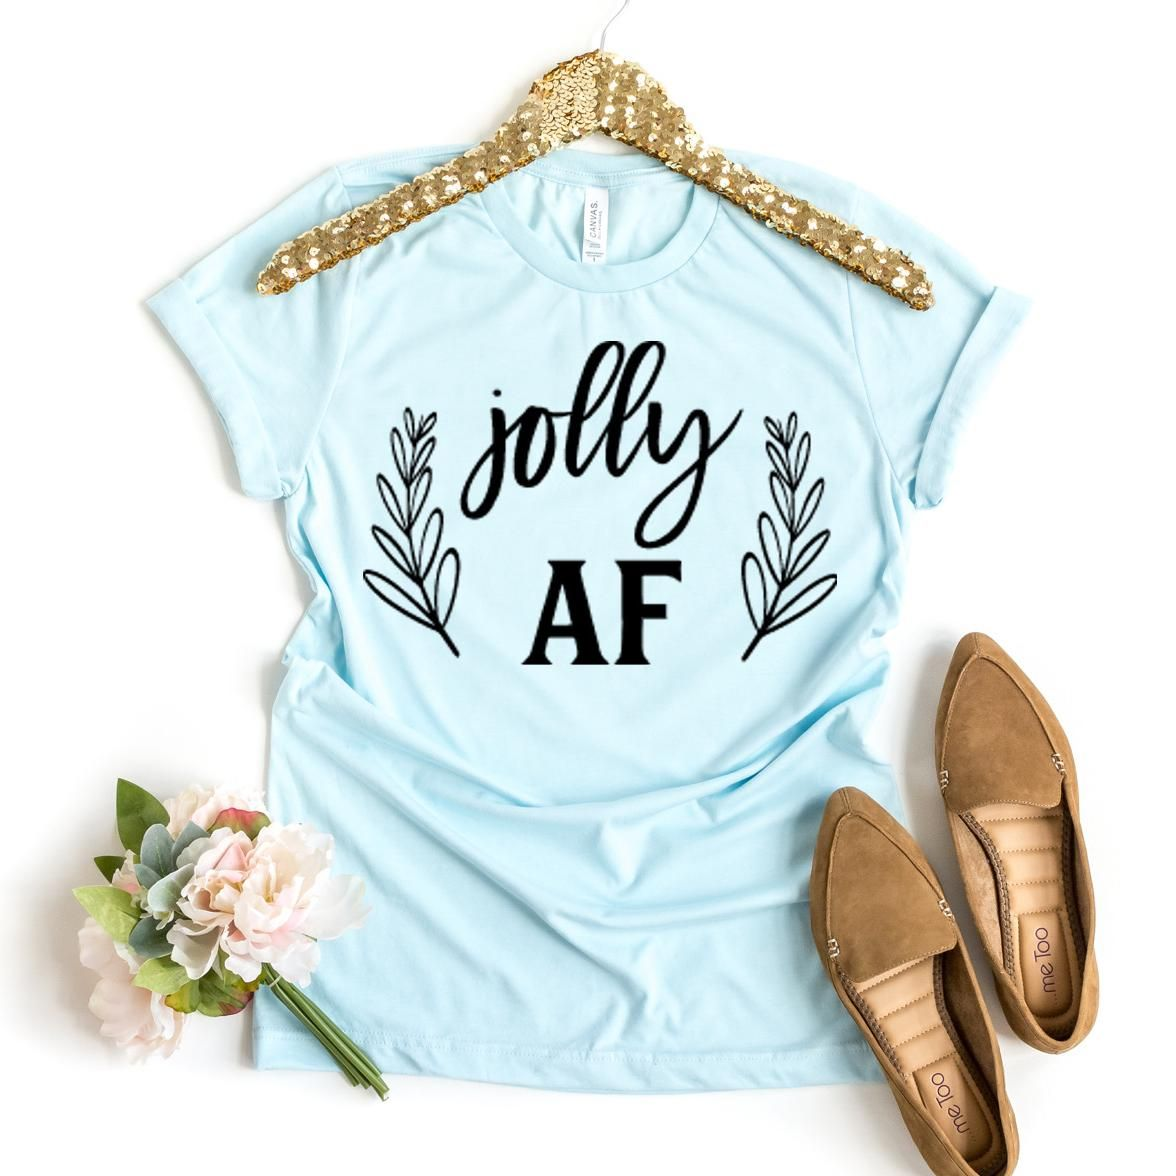 Jolly AF T-shirt, Celebration Gift, Family Tshirt, Festive Shirt, Party Shirts, Xmas Party Top, Holiday Tee, Vacation Size Large